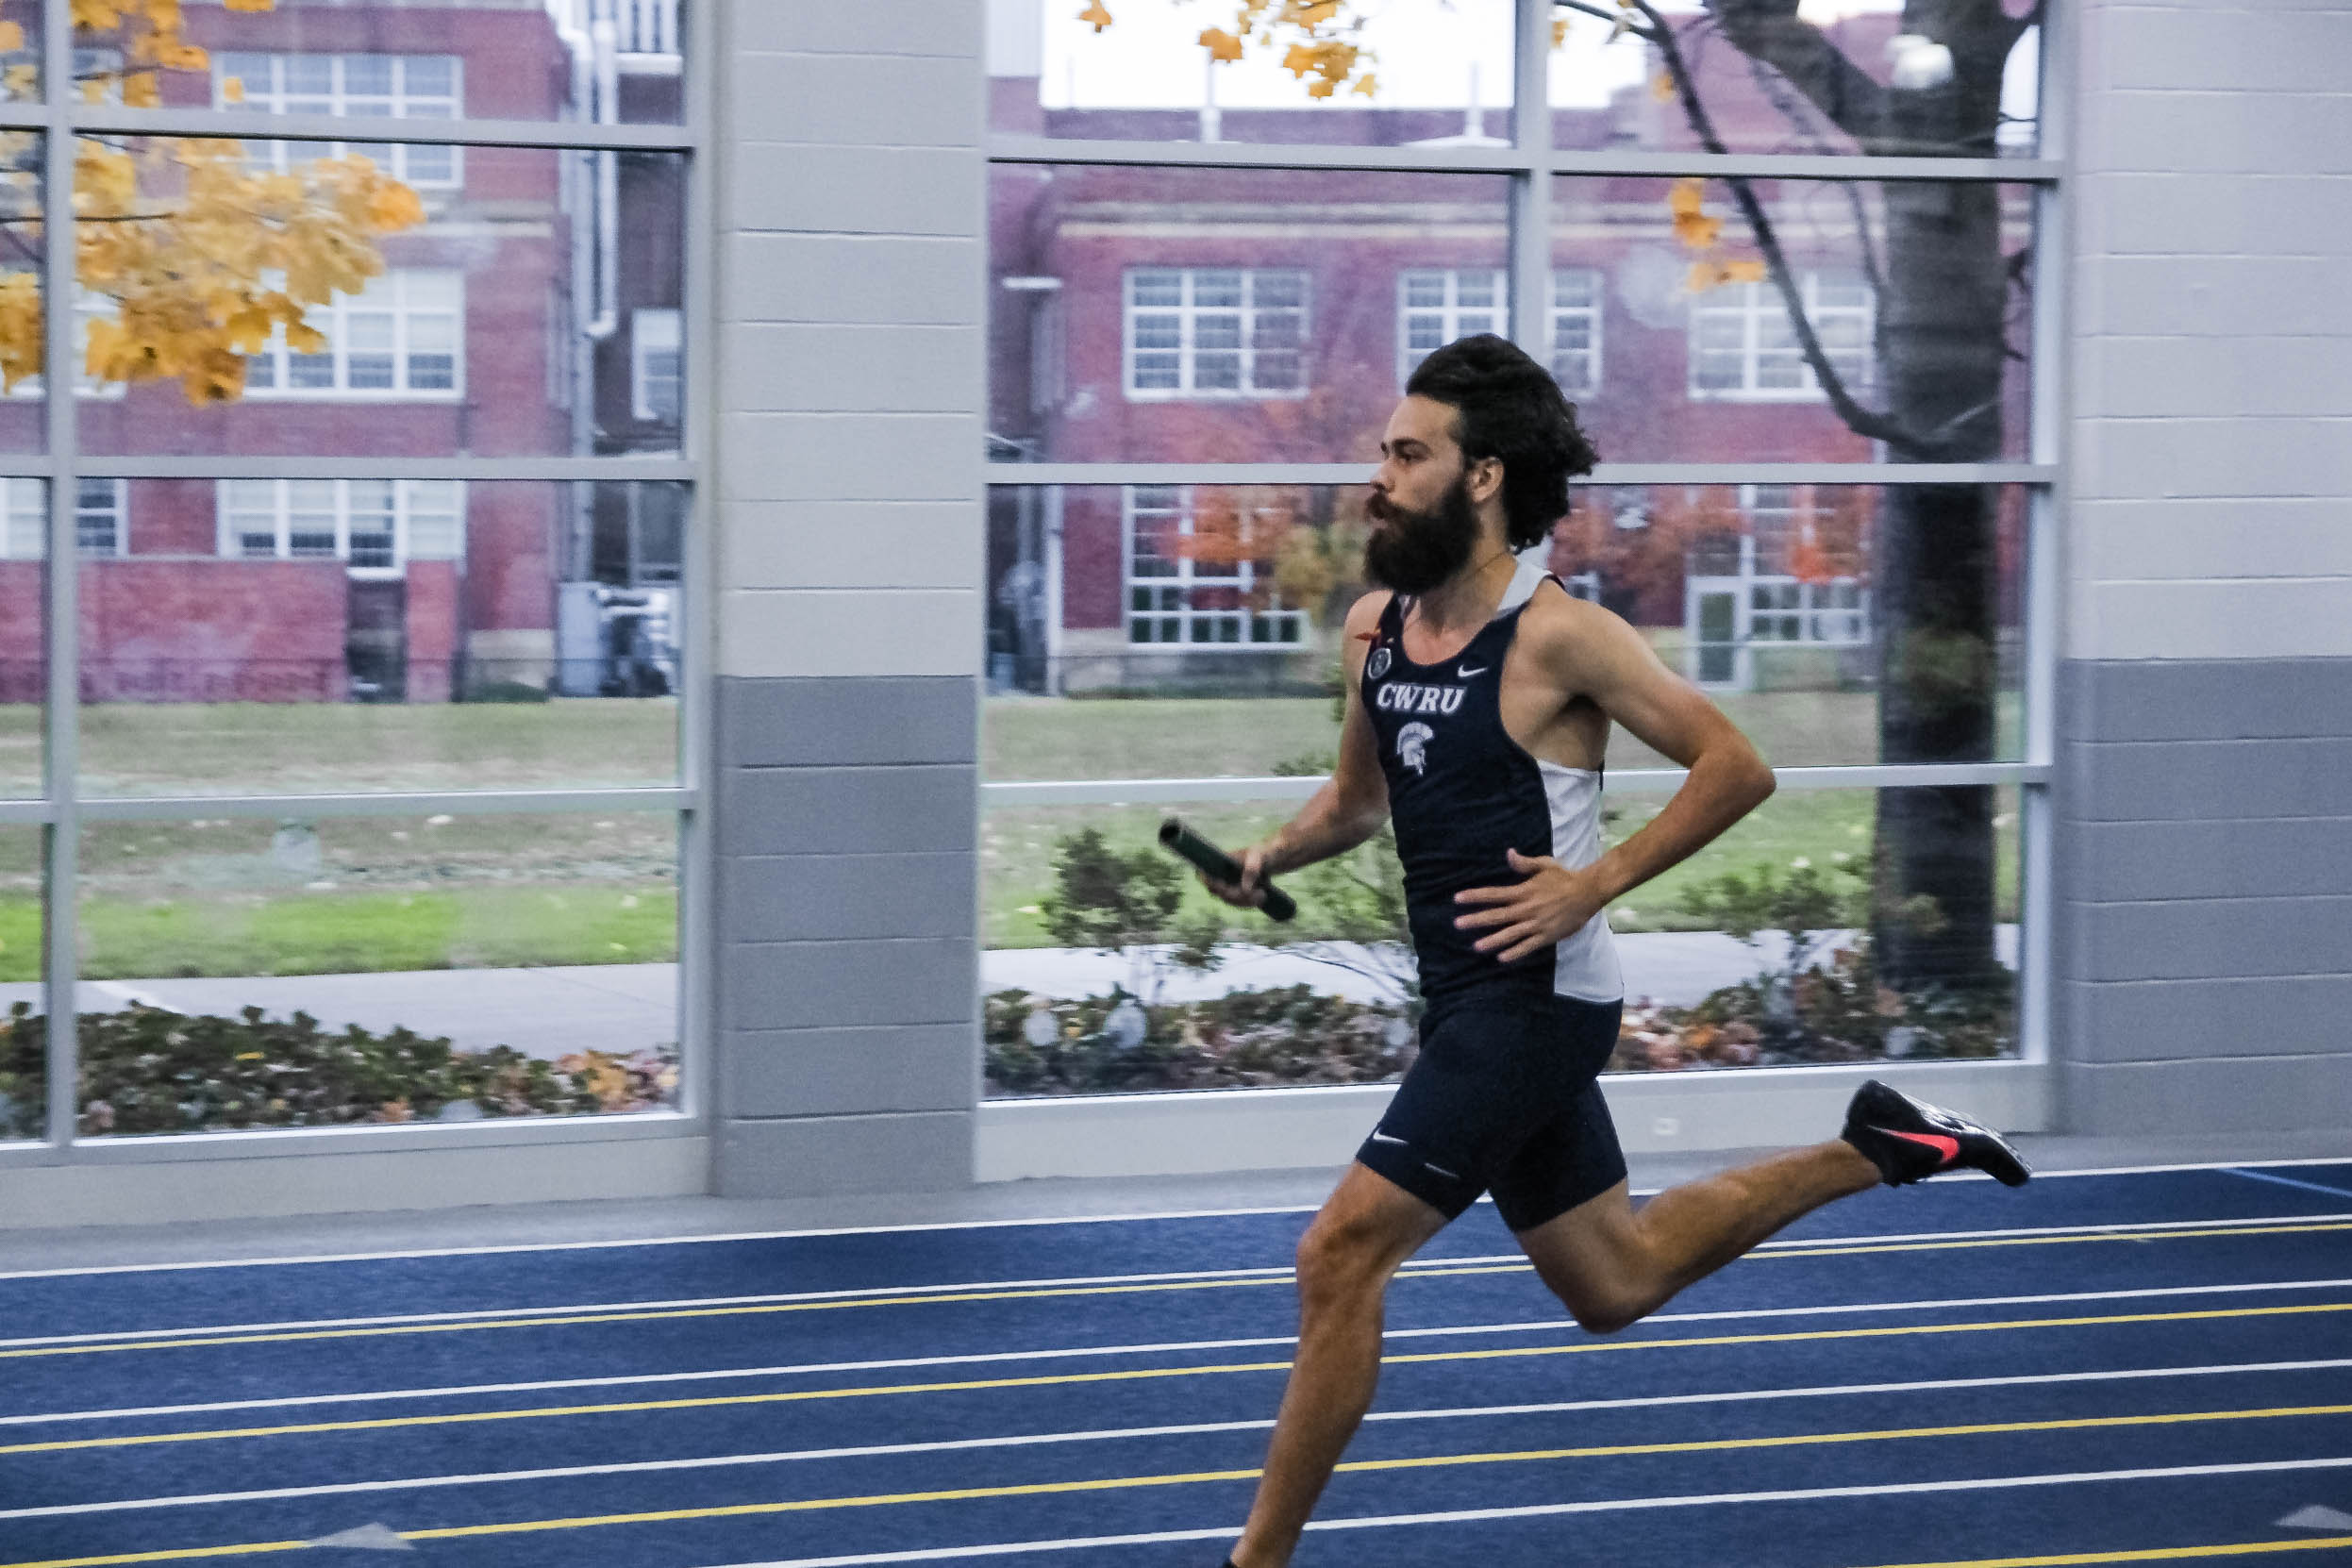 Nico Ericksen-Deriso sprints to connect with a teammate during a relay earlier in the season. The Spartans take on Carnegie Mellon University in the Ninth Annual Battle for the Obelisk.